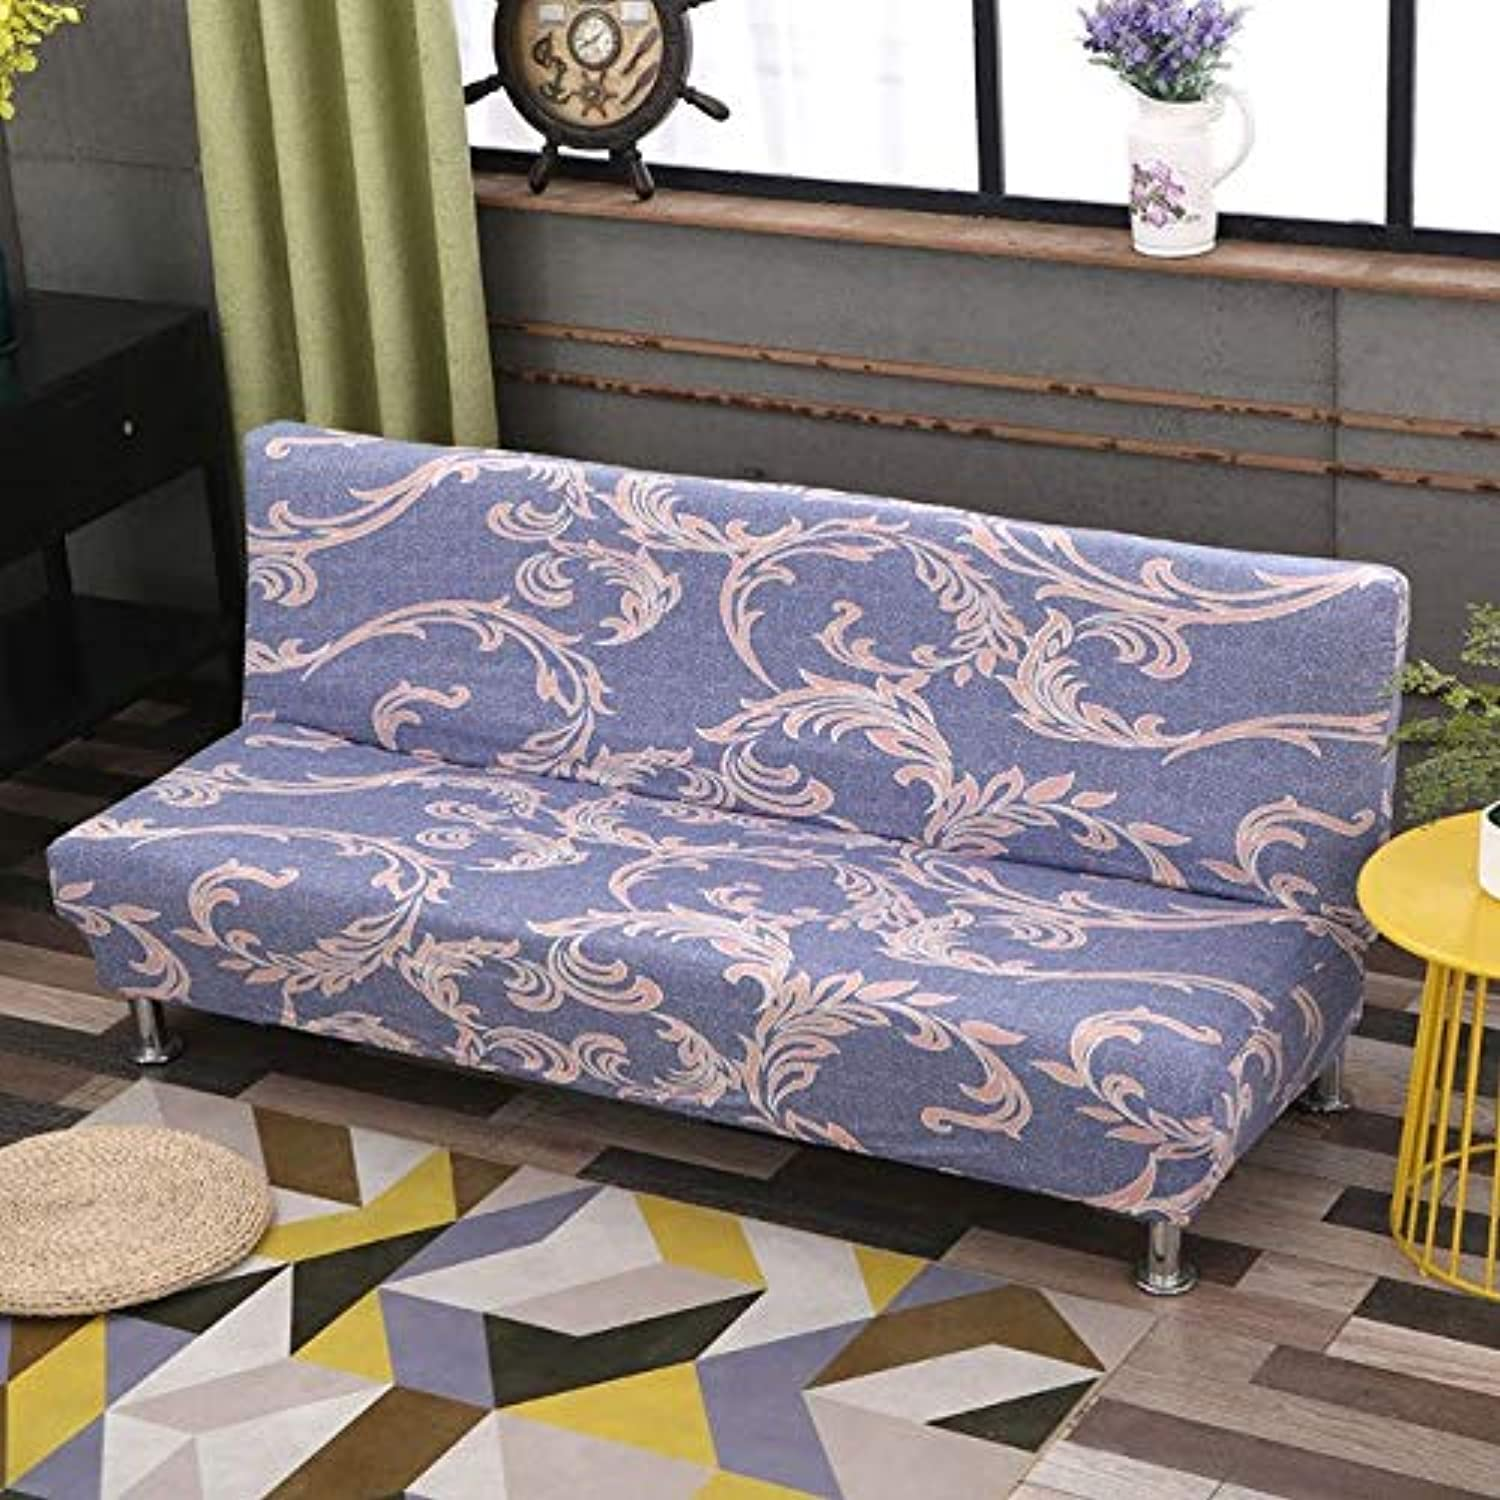 Farmerly Folding Sofa Bed Cover Tight All-Inclusive Slip-Resistant Sofa Cover Elastic Stretch Slipcover Sofa Length Between 165 and 185cm   color 17, D 165 to 185cm